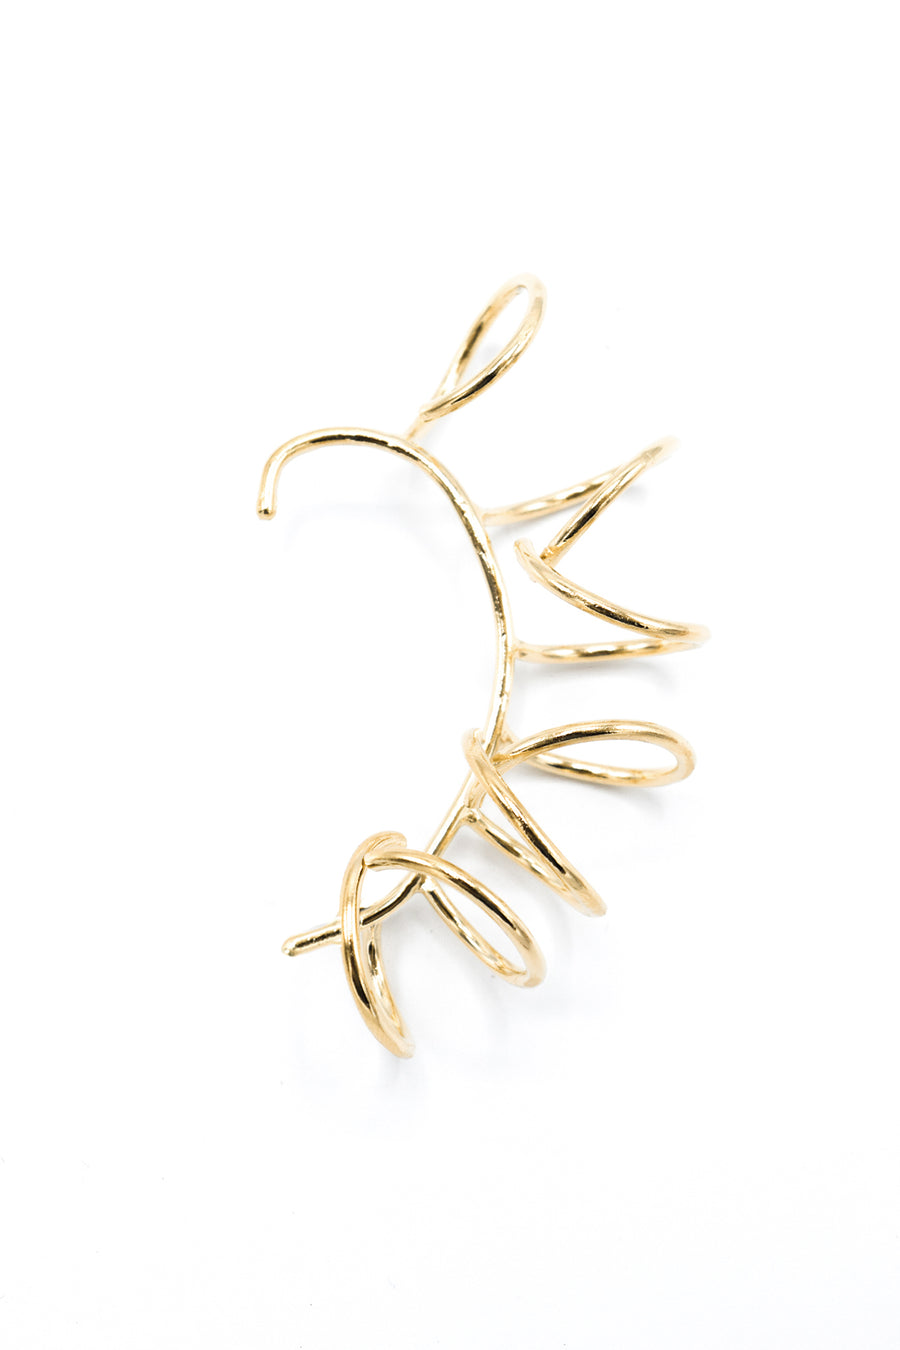 Rebel ear cuff in 14k yellow gold. One-sided ear cuff with multiple large coil design. No piercing required. Handmade by local jewelry designer, Nina Berenato, in Austin, Texas.